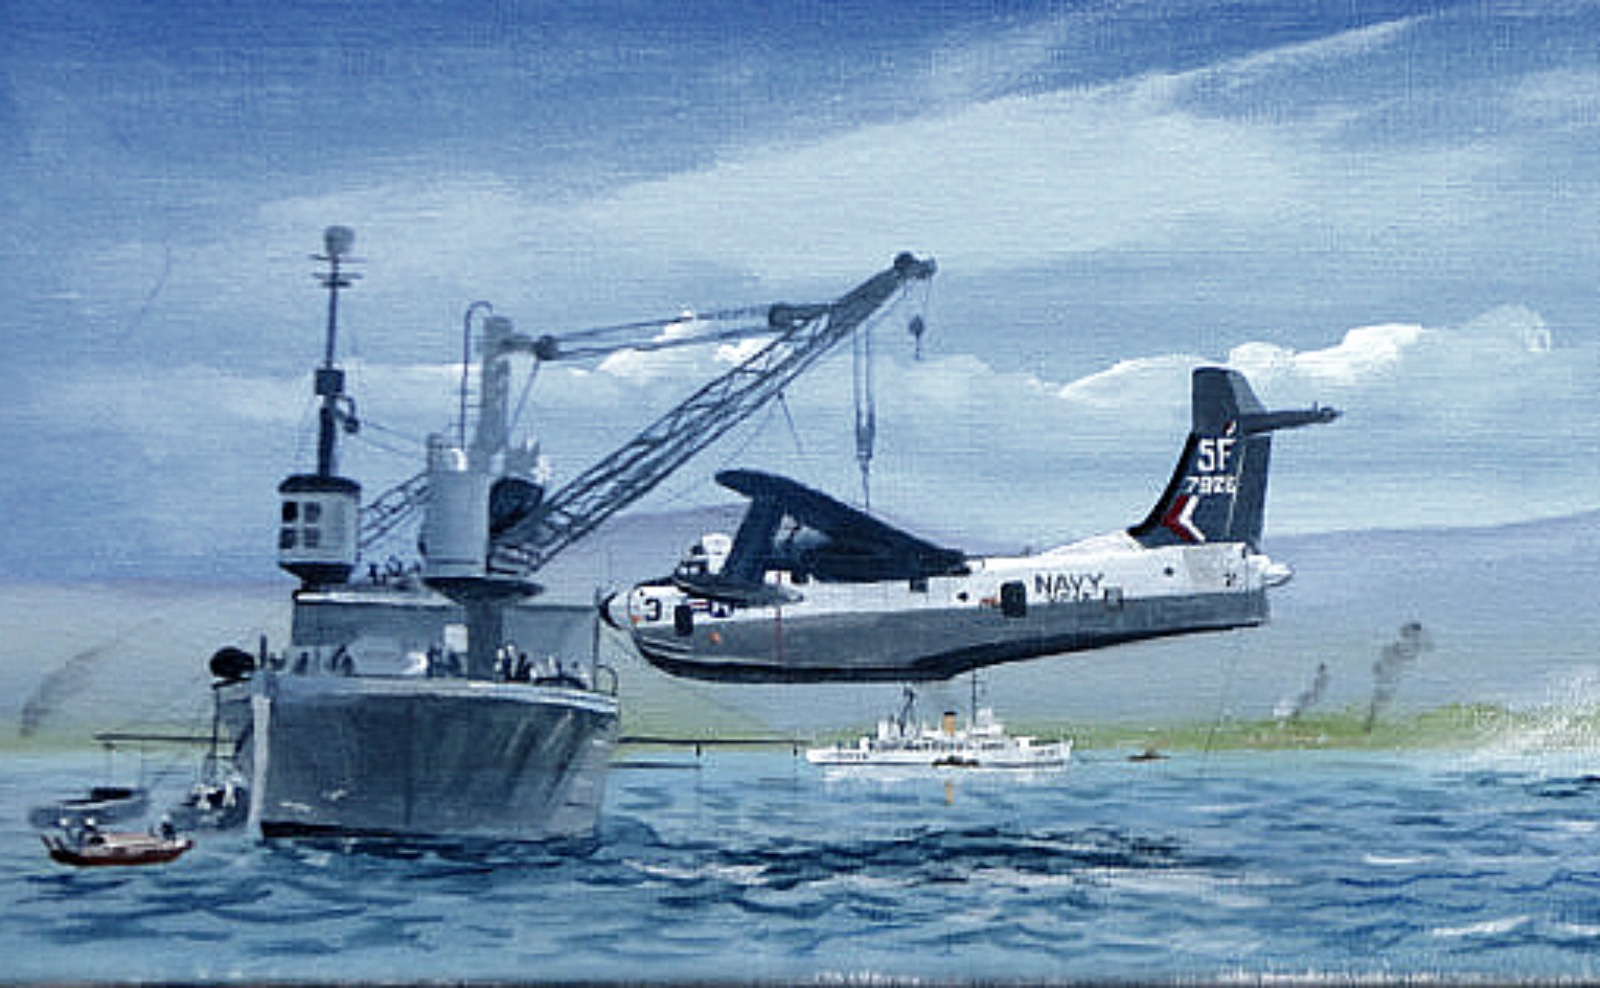 Cam Ranh Bay circ 1967. USS Currytuck CGC Half Moon and LST 1166. Two P5M Marlins, a Sky Crane and a Sea Knight 91914904_1486783301501964_1867827332241162240_o